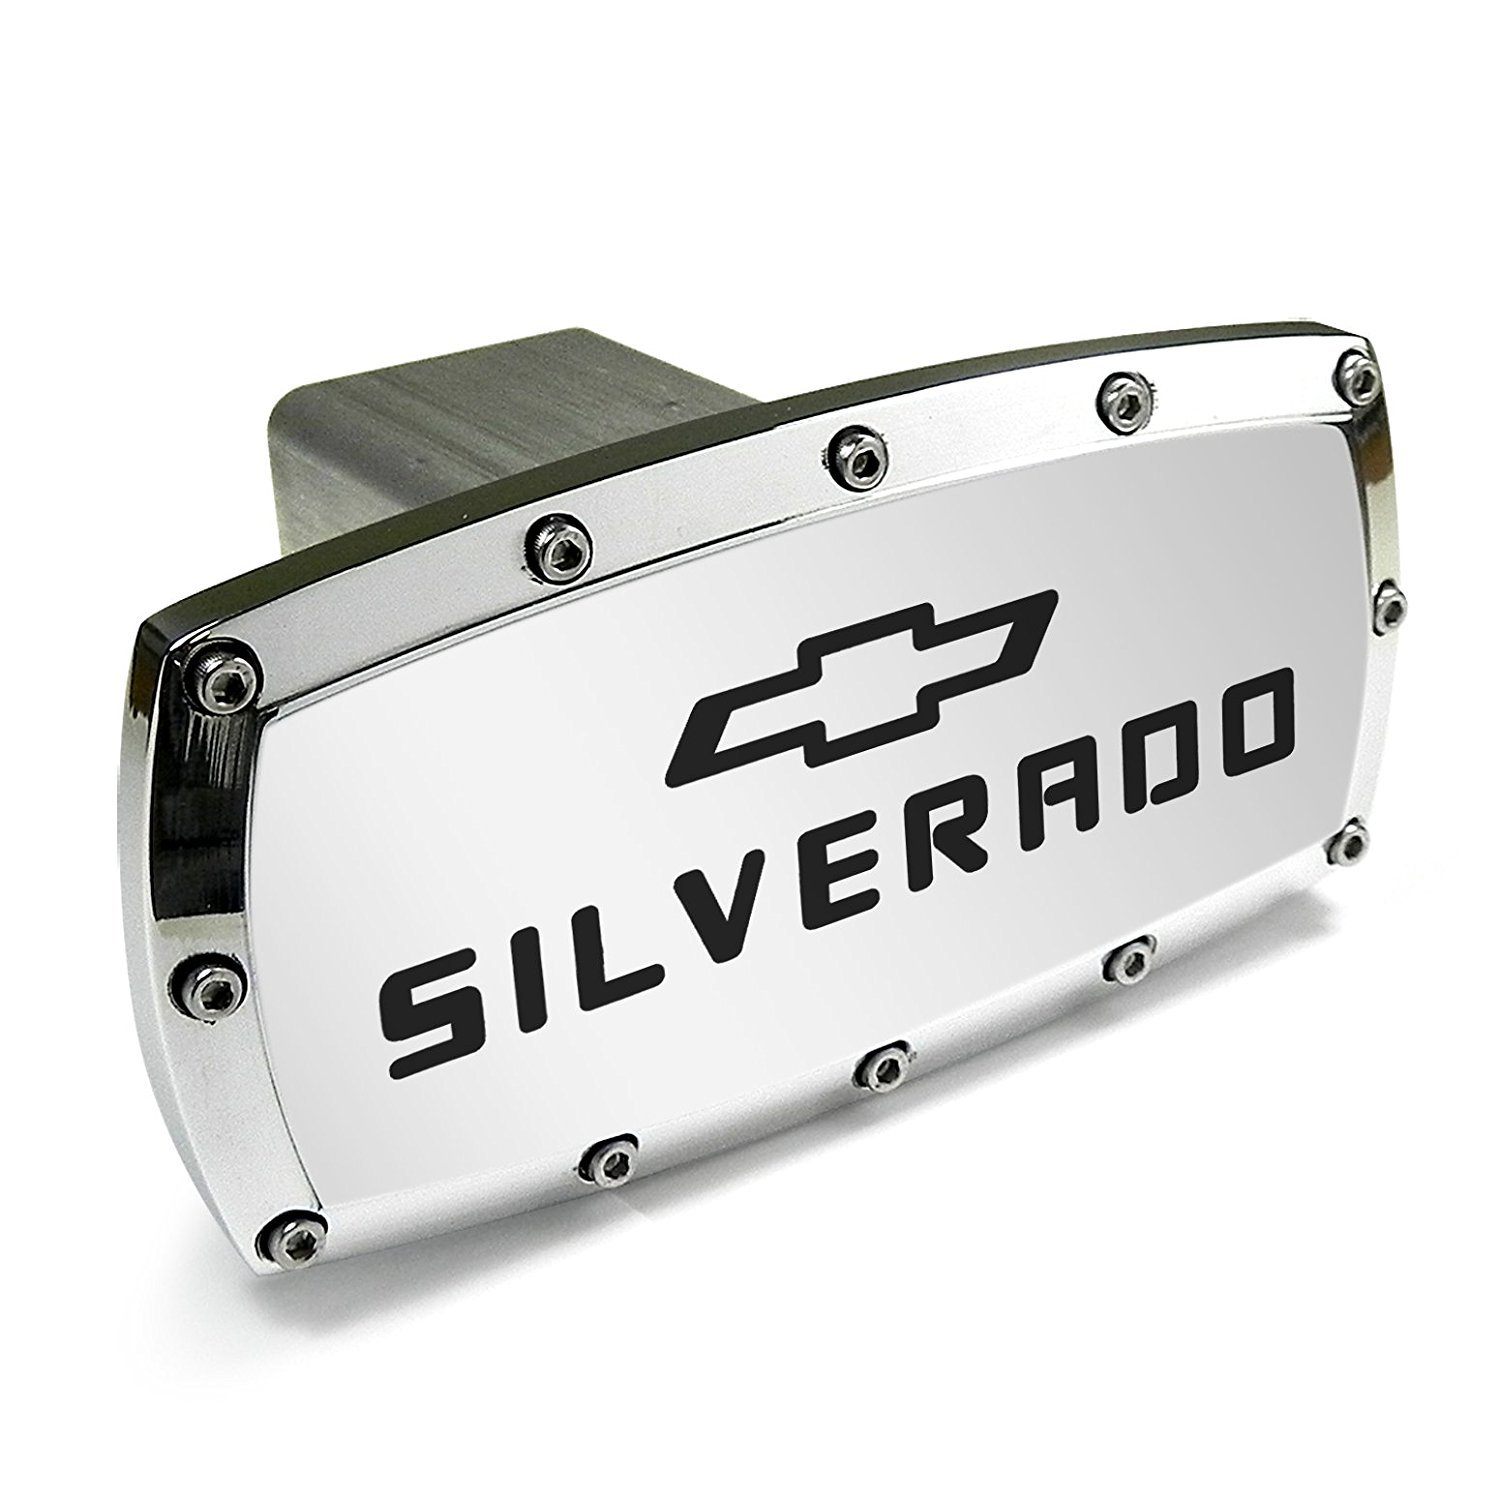 Chevrolet Silverado Billet Aluminum Tow Hitch Cover by CHEVROLET